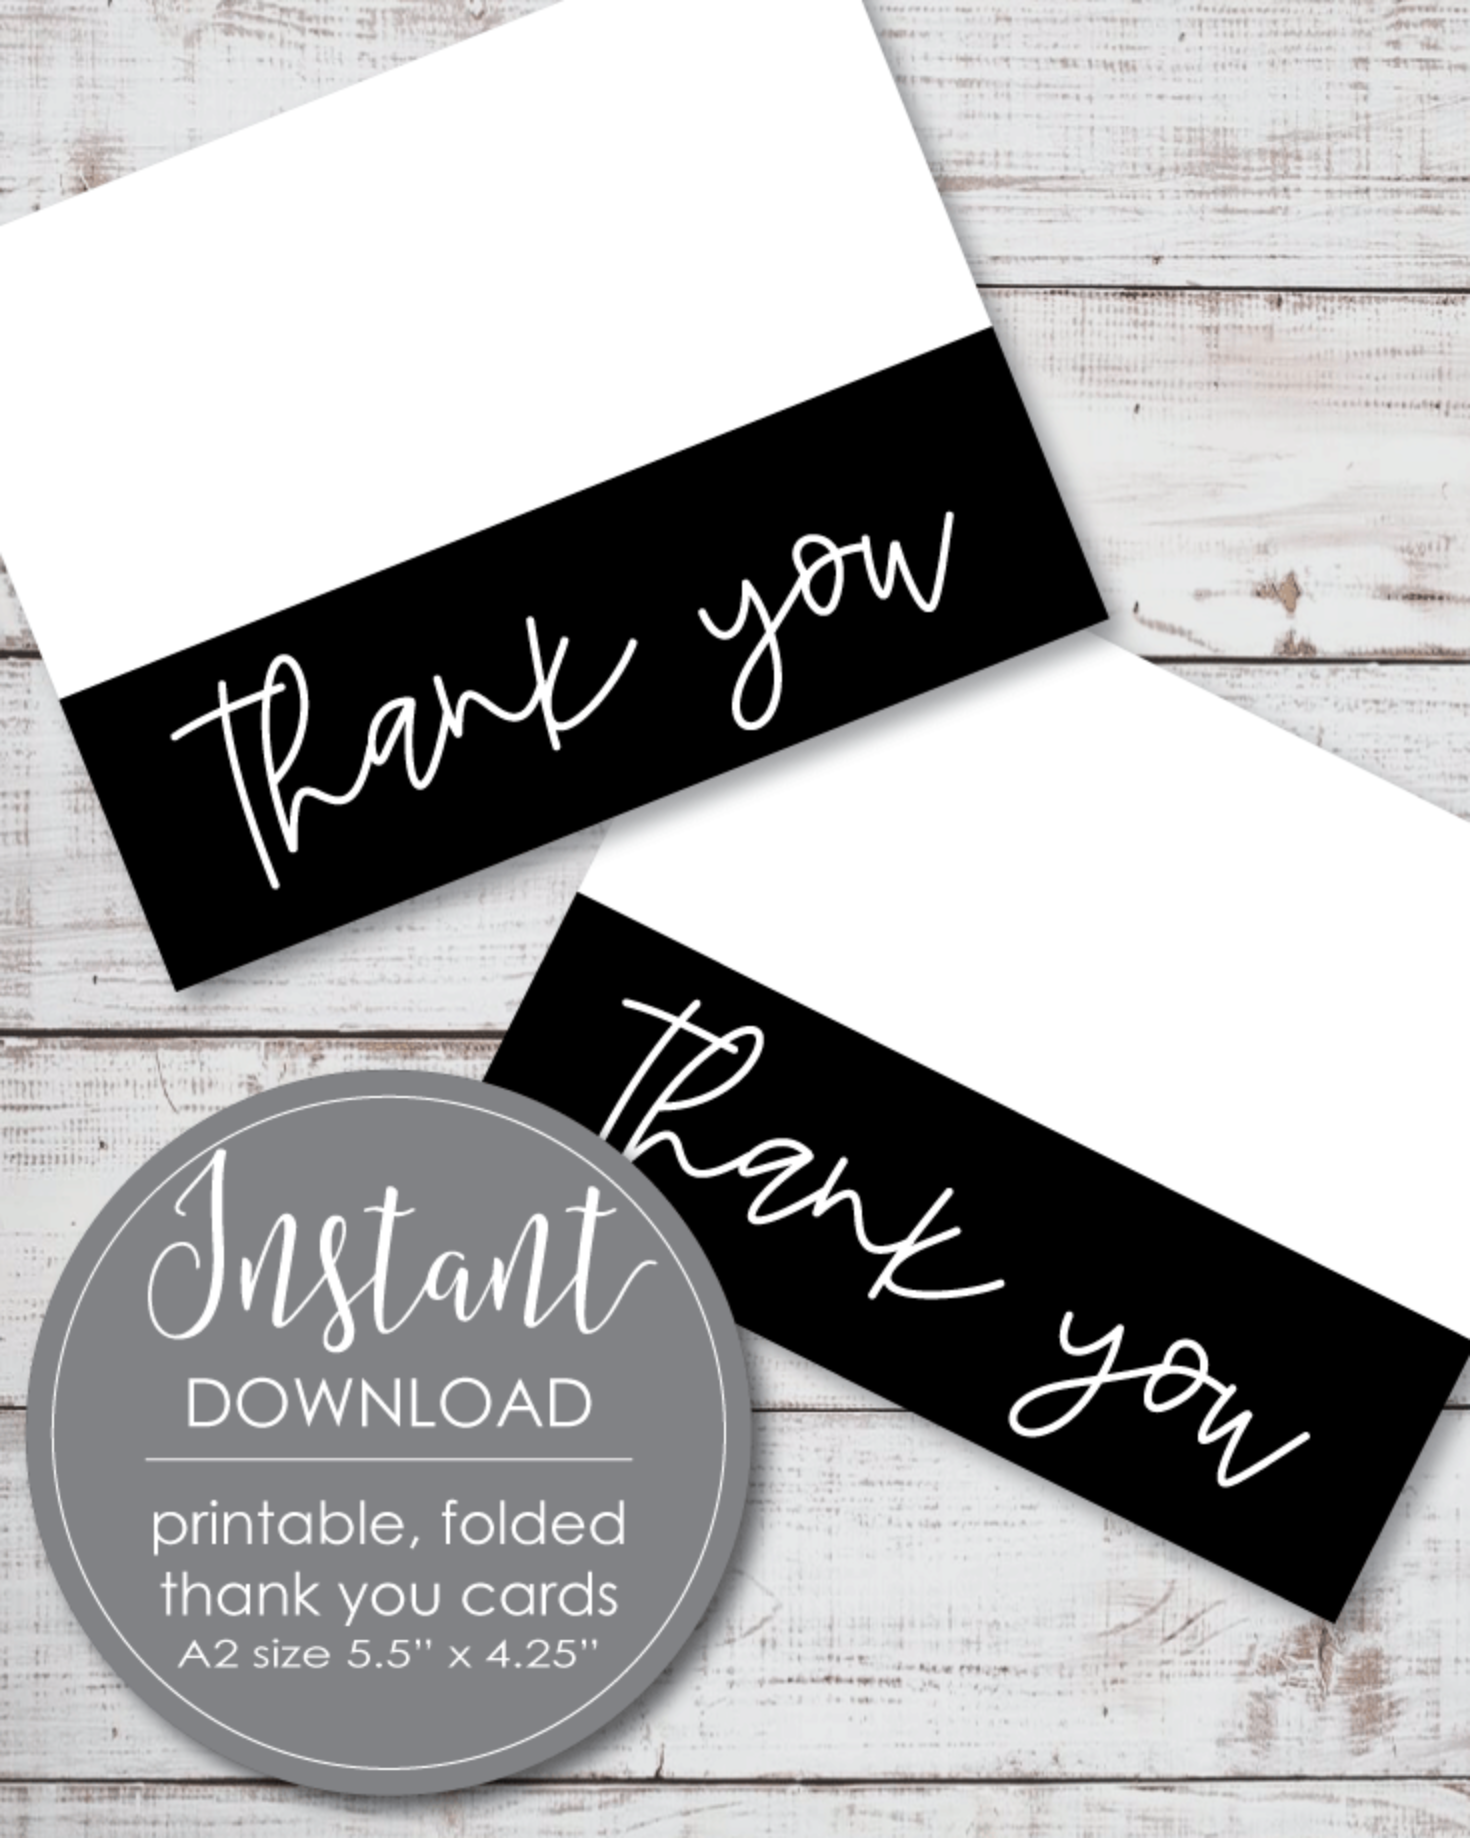 Printable Thank You Card - Black And White Theme - Foldable Card, 5.5 x 4.25""